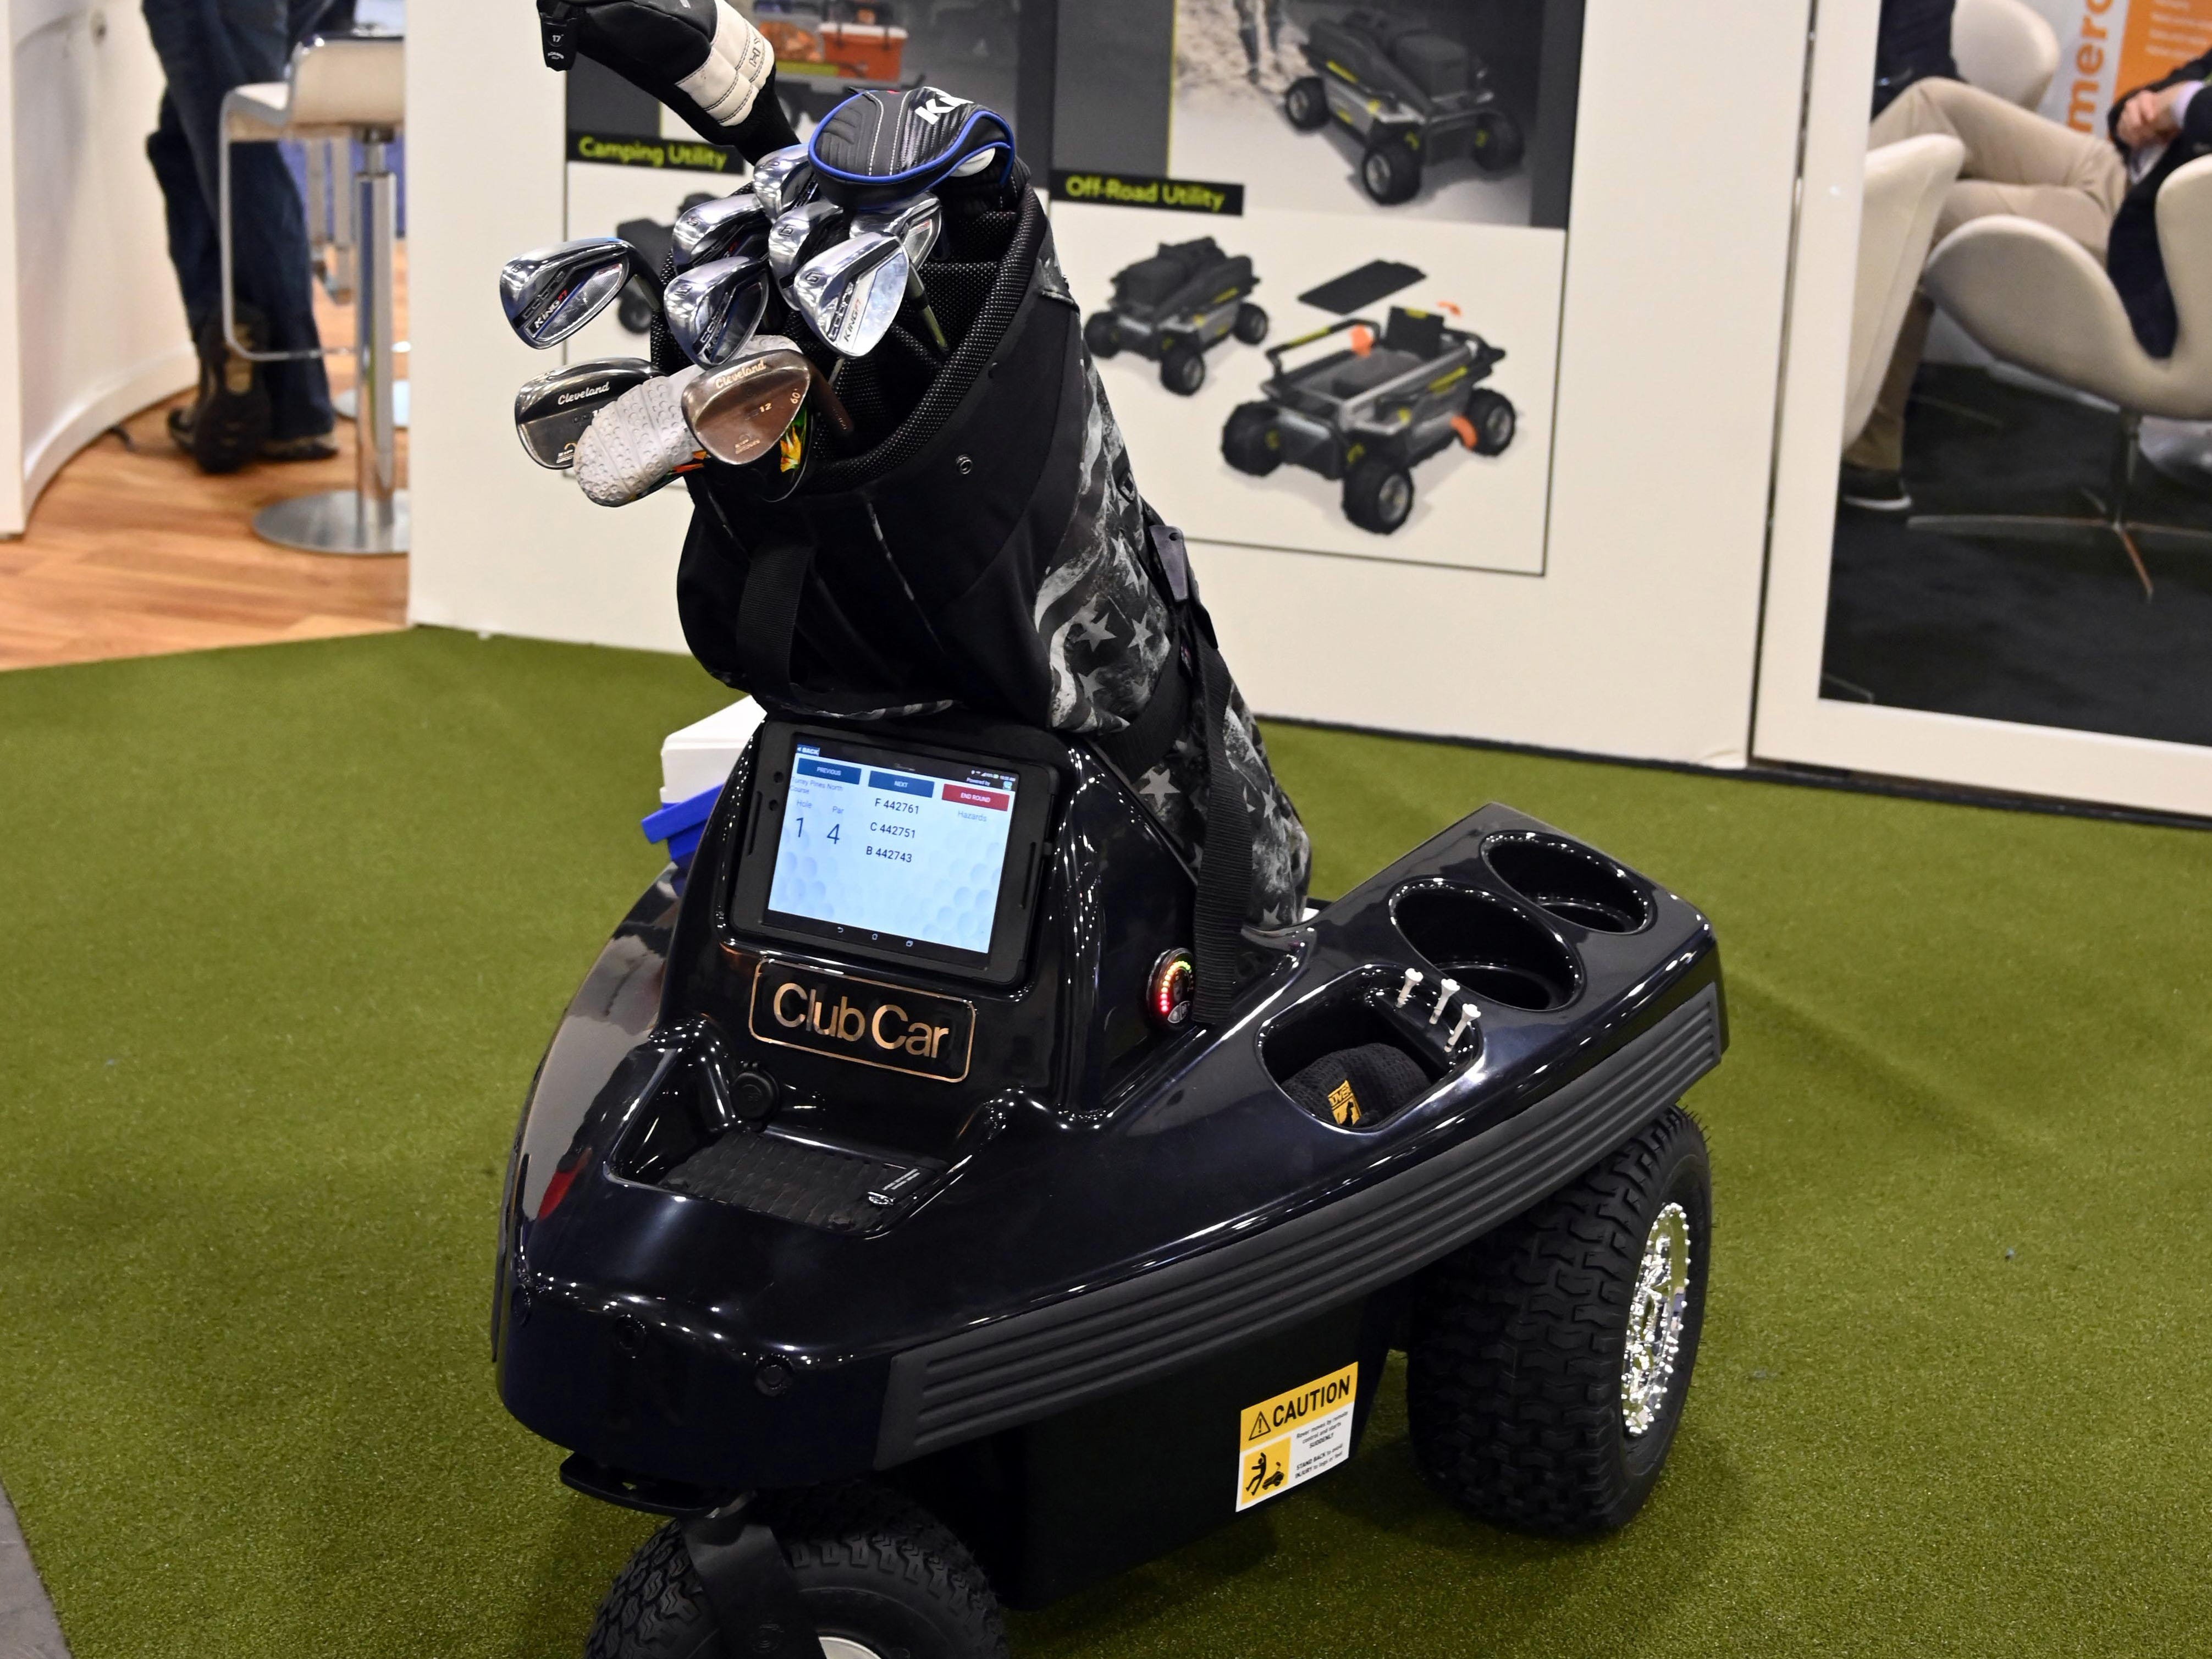 Rover, an autonomous cart that carries a golfer's bag utilizes sensor technology and wireless transmission to follow a golfer wherever he walks on the course.